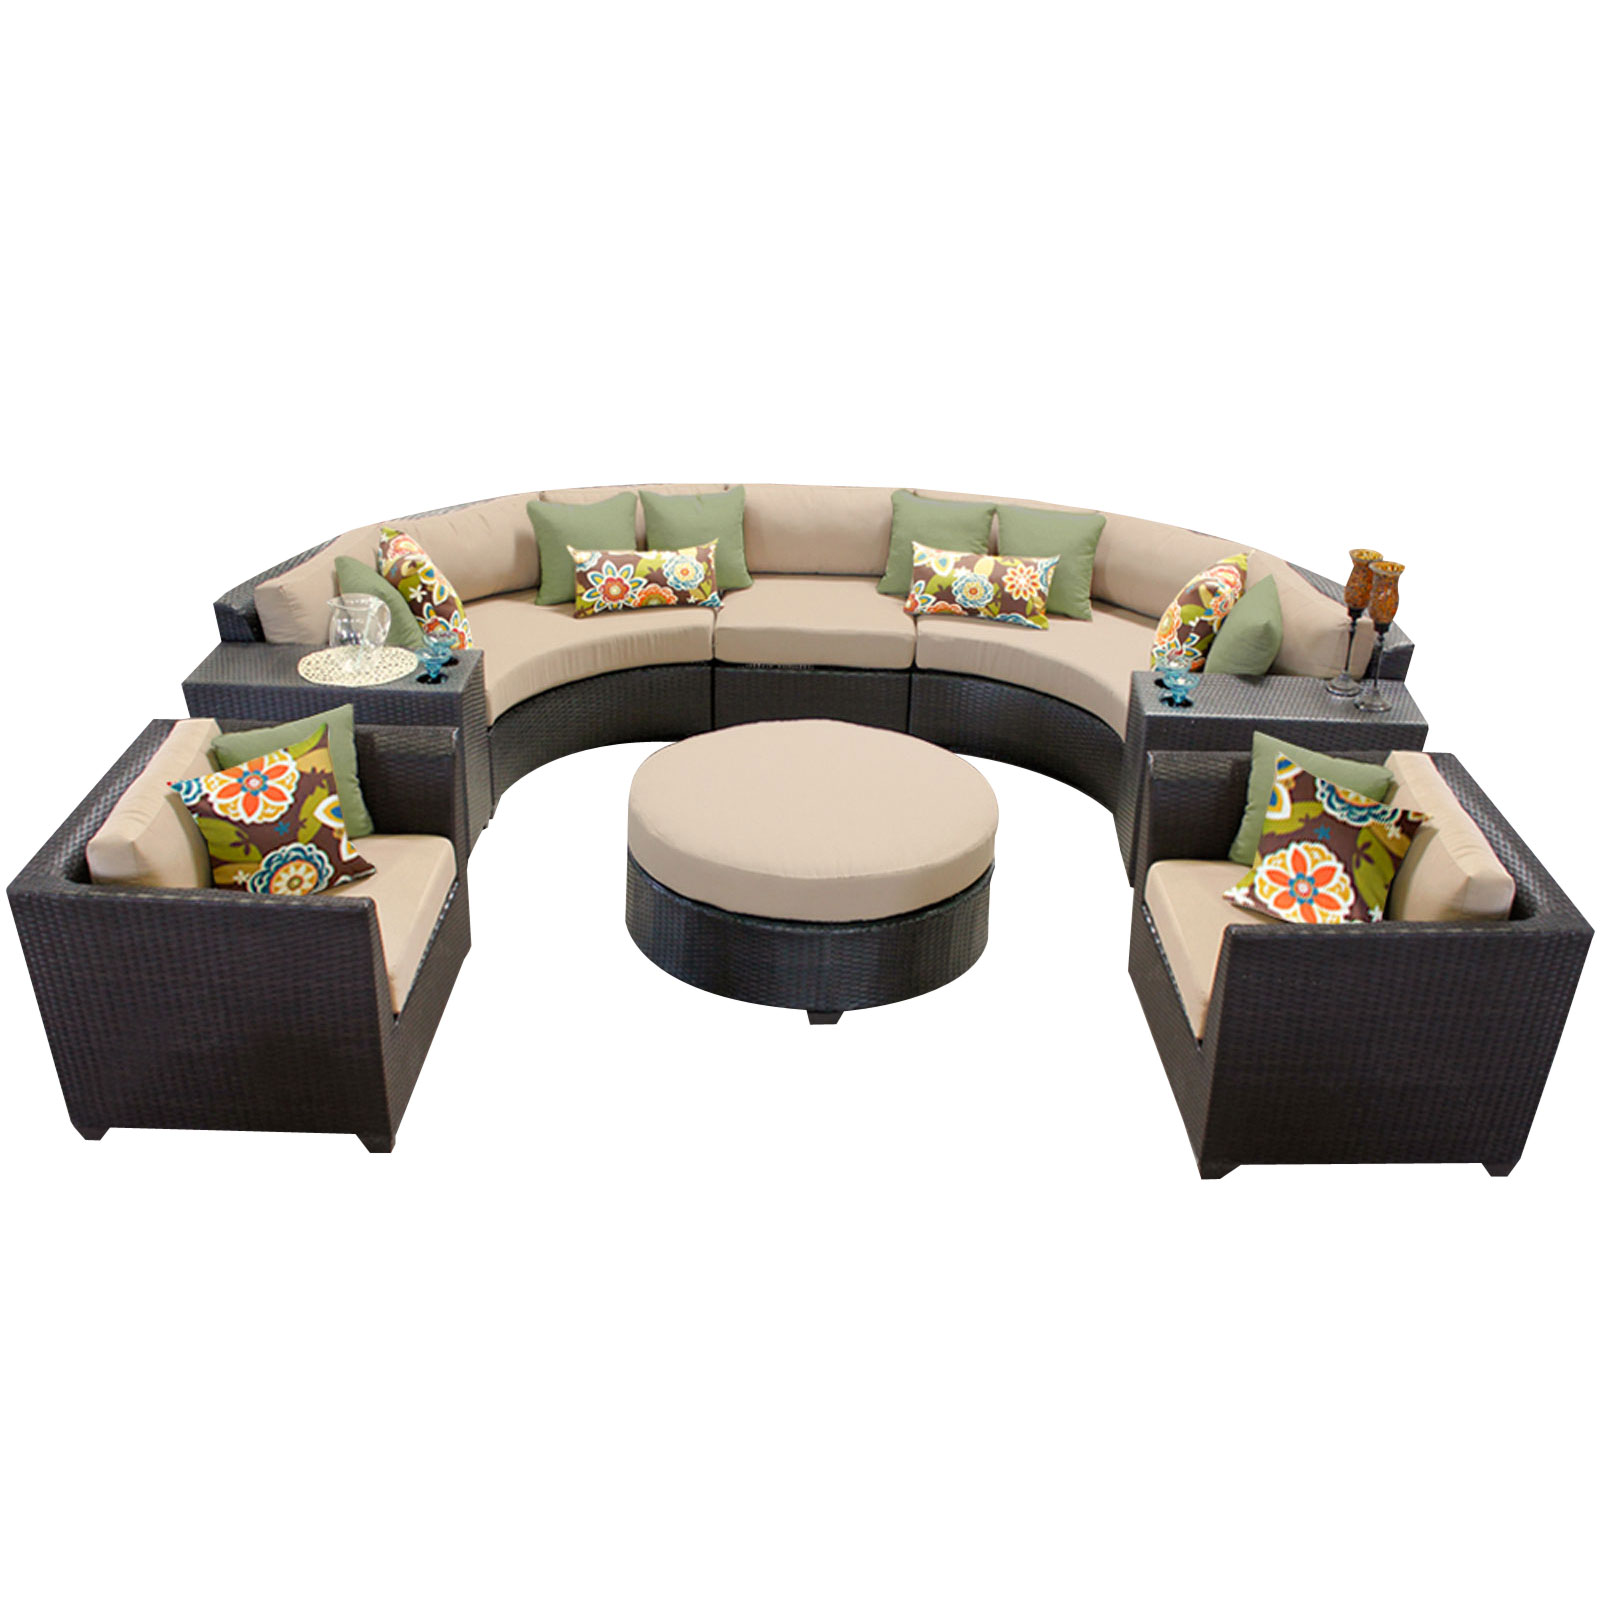 Bermuda 8 Piece Outdoor Wicker Patio Furniture Set 08e